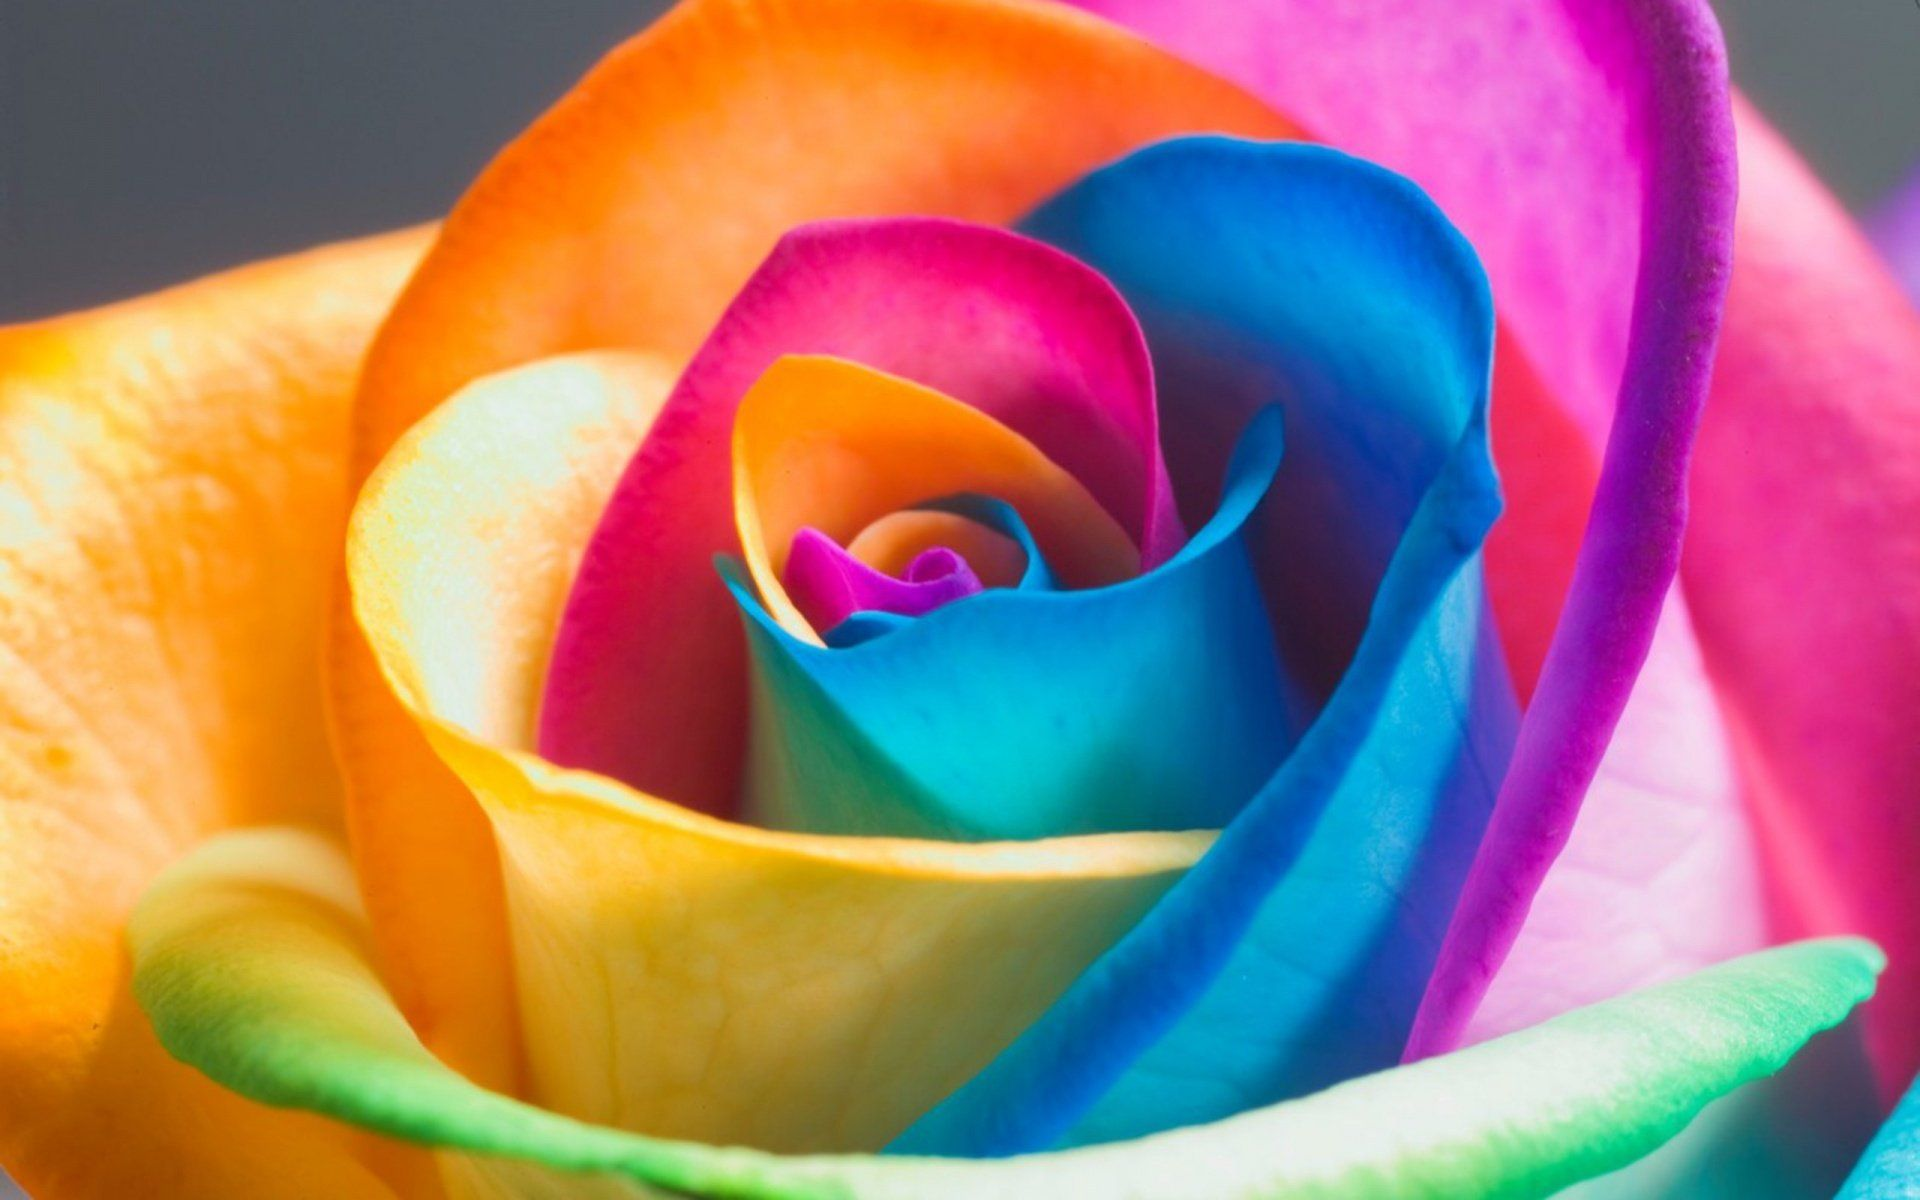 flower wallpapers free download hd latest beautiful colorful images